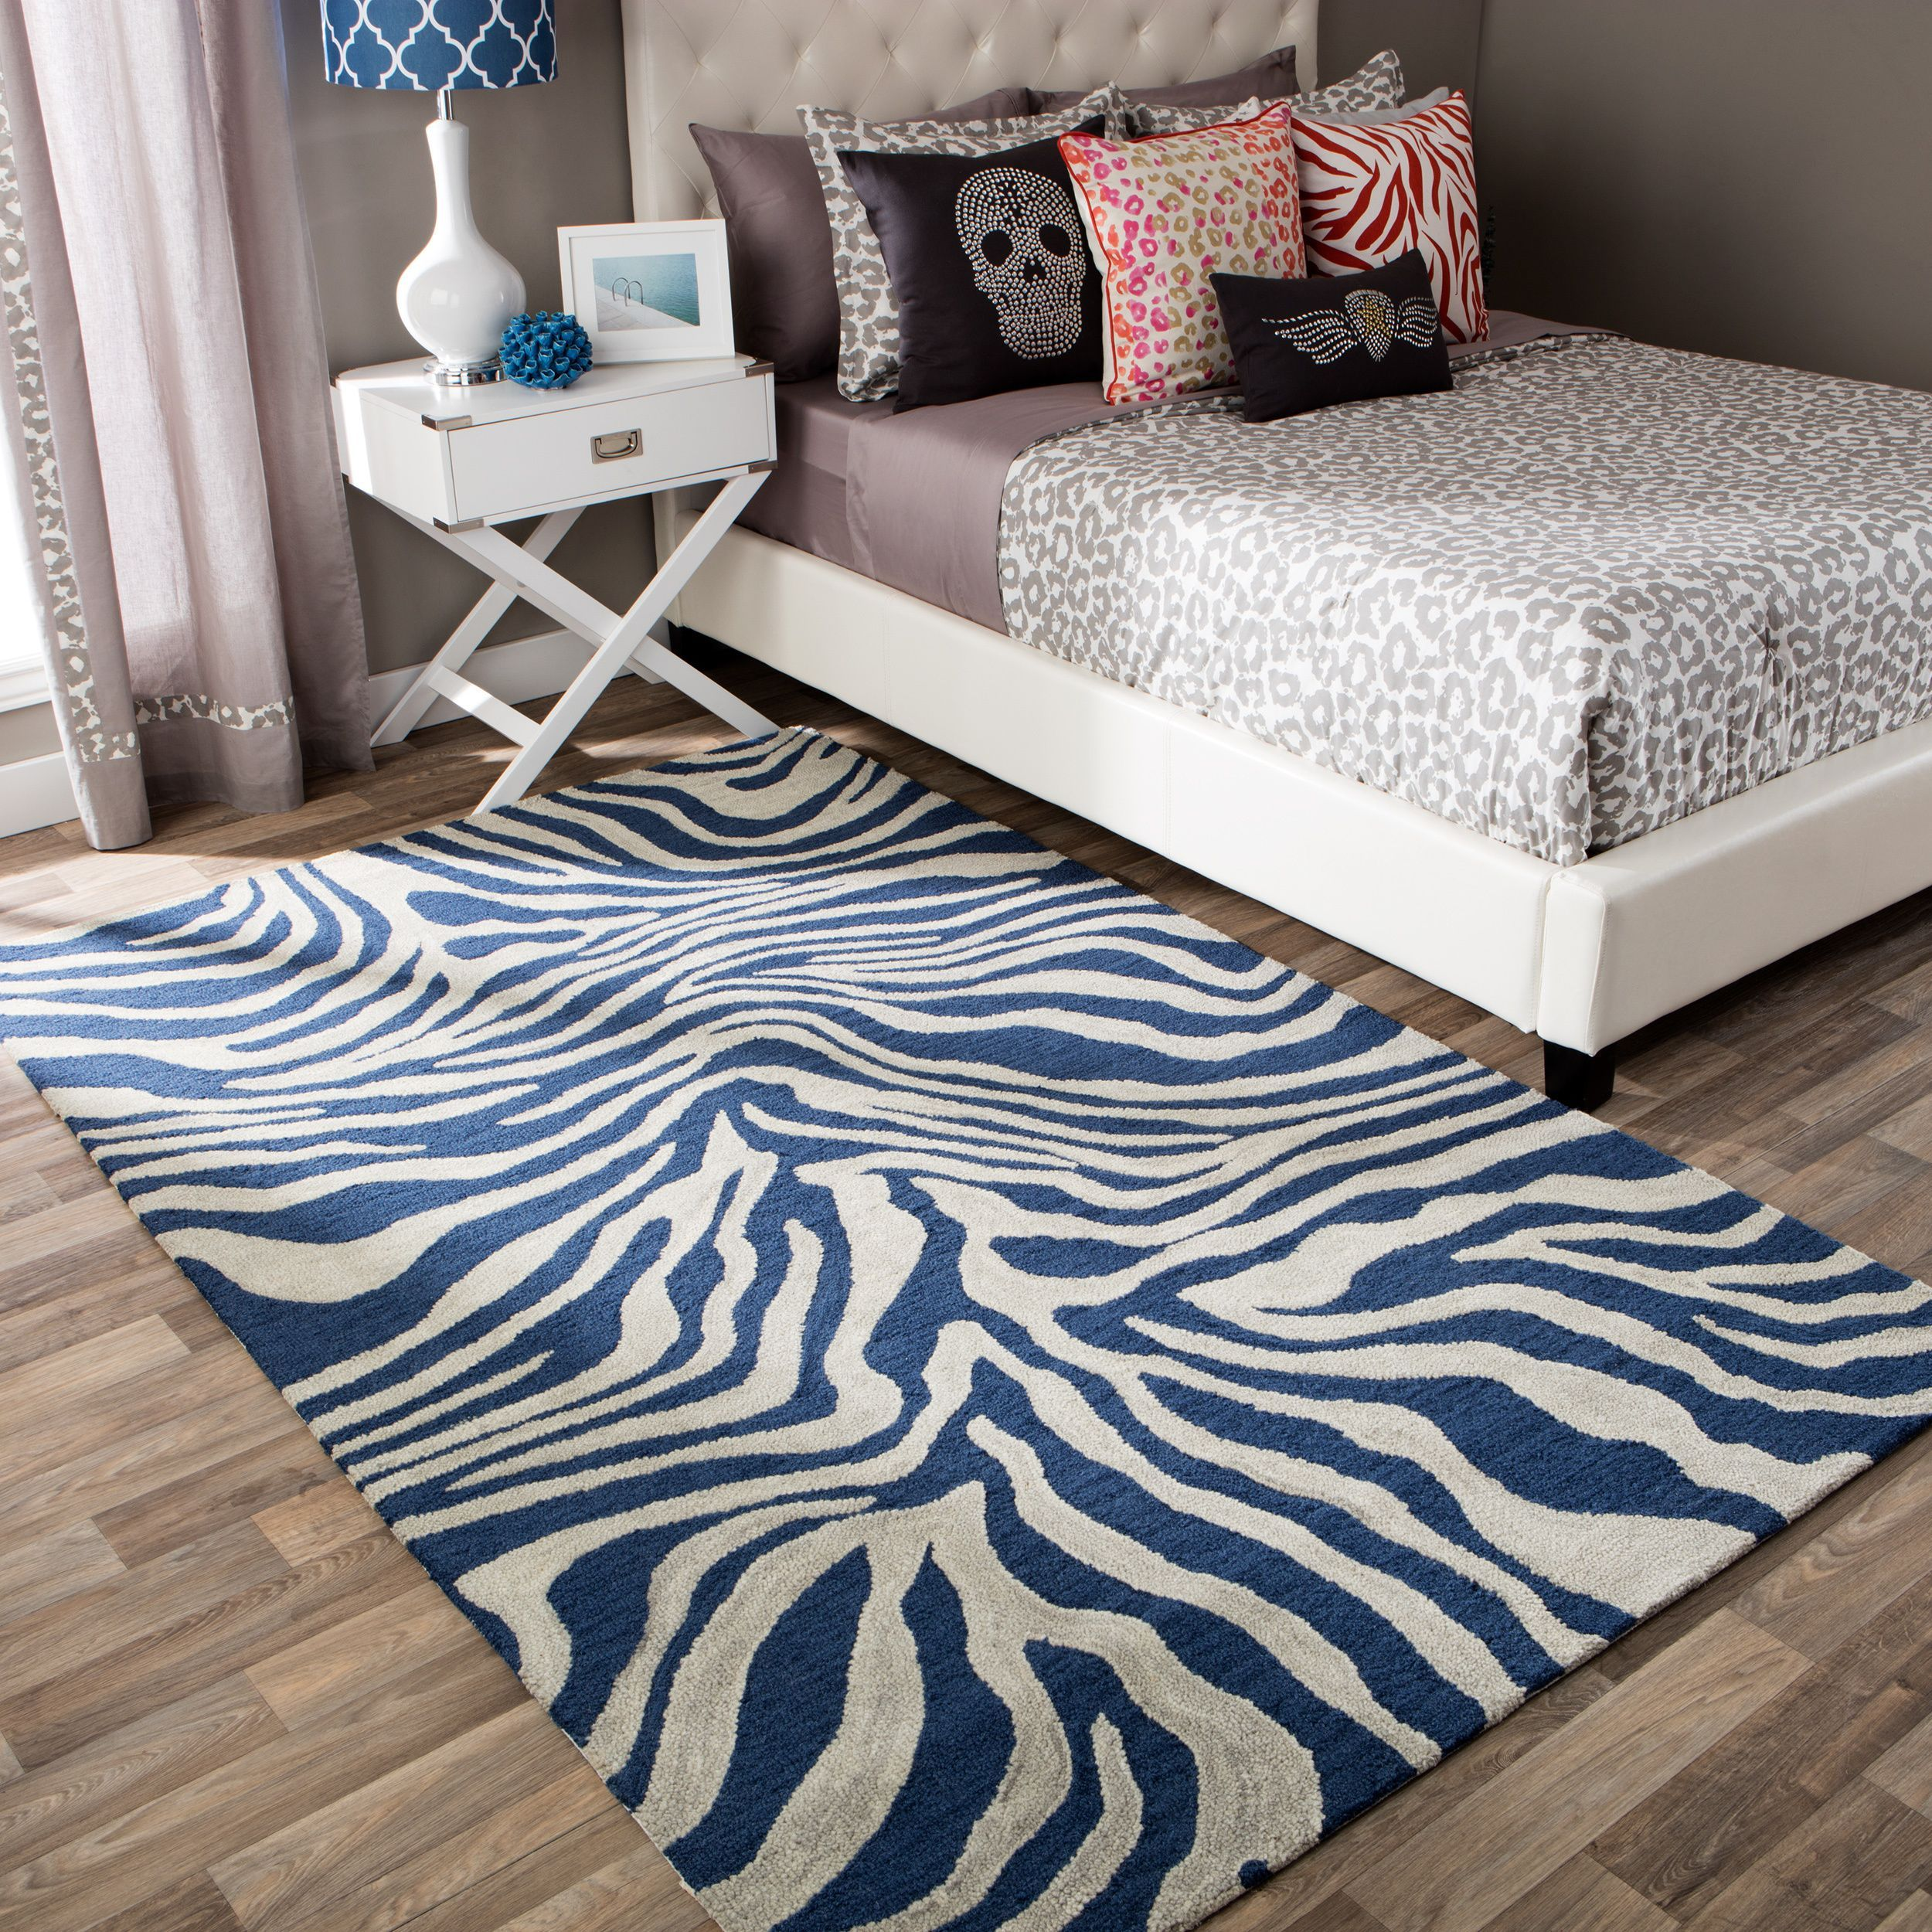 Andrew Charles Snow Leopard Collection Zebra Navy Area Rug 5 X 8 Zebra Ls 187a Navy 5 X 8 Grey Size 5 X 8 Cotto Rizzy Home Colorful Rugs Area Rugs